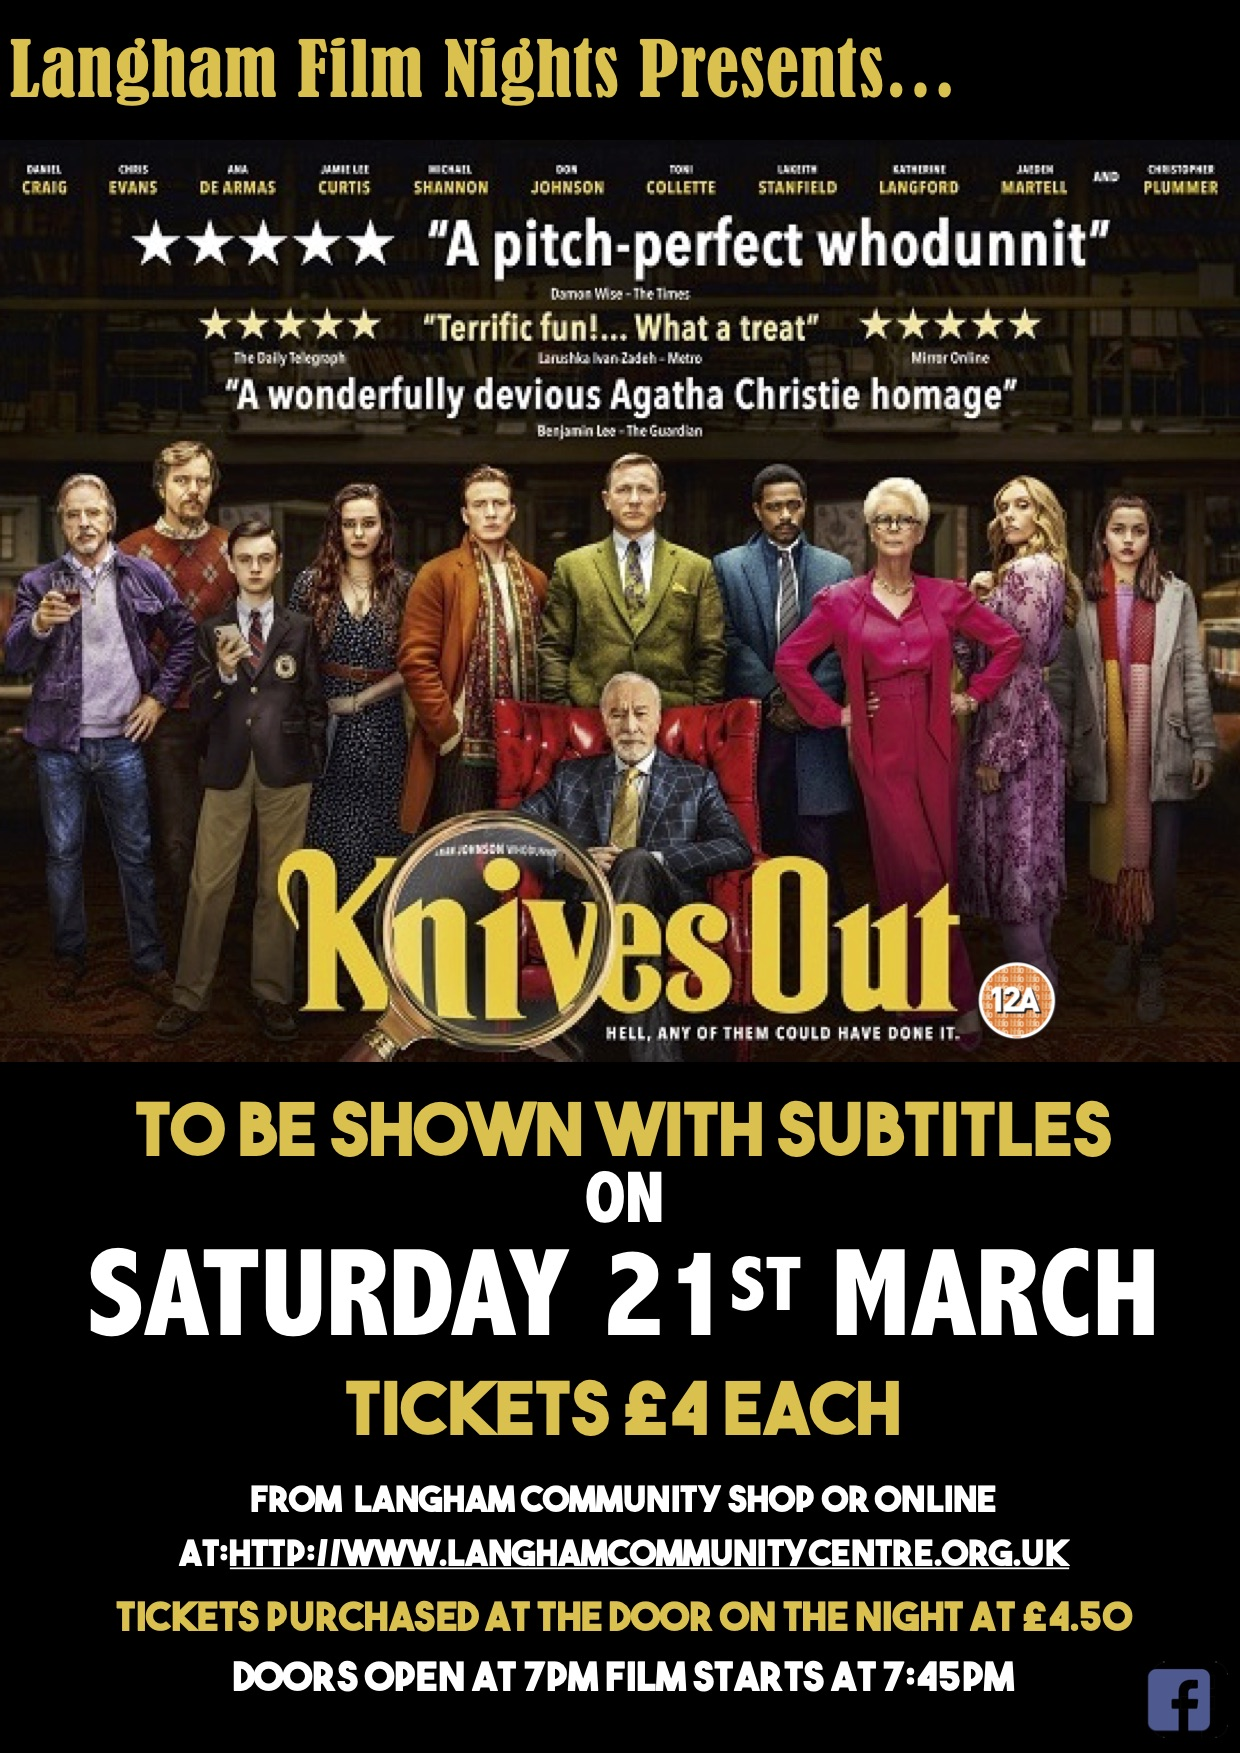 Langham Film Night presents 'Knives Out' Saturday 21st March, 7pm Langham Community Centre Tickets available now on line and from the Langham Community Shop £4 each.